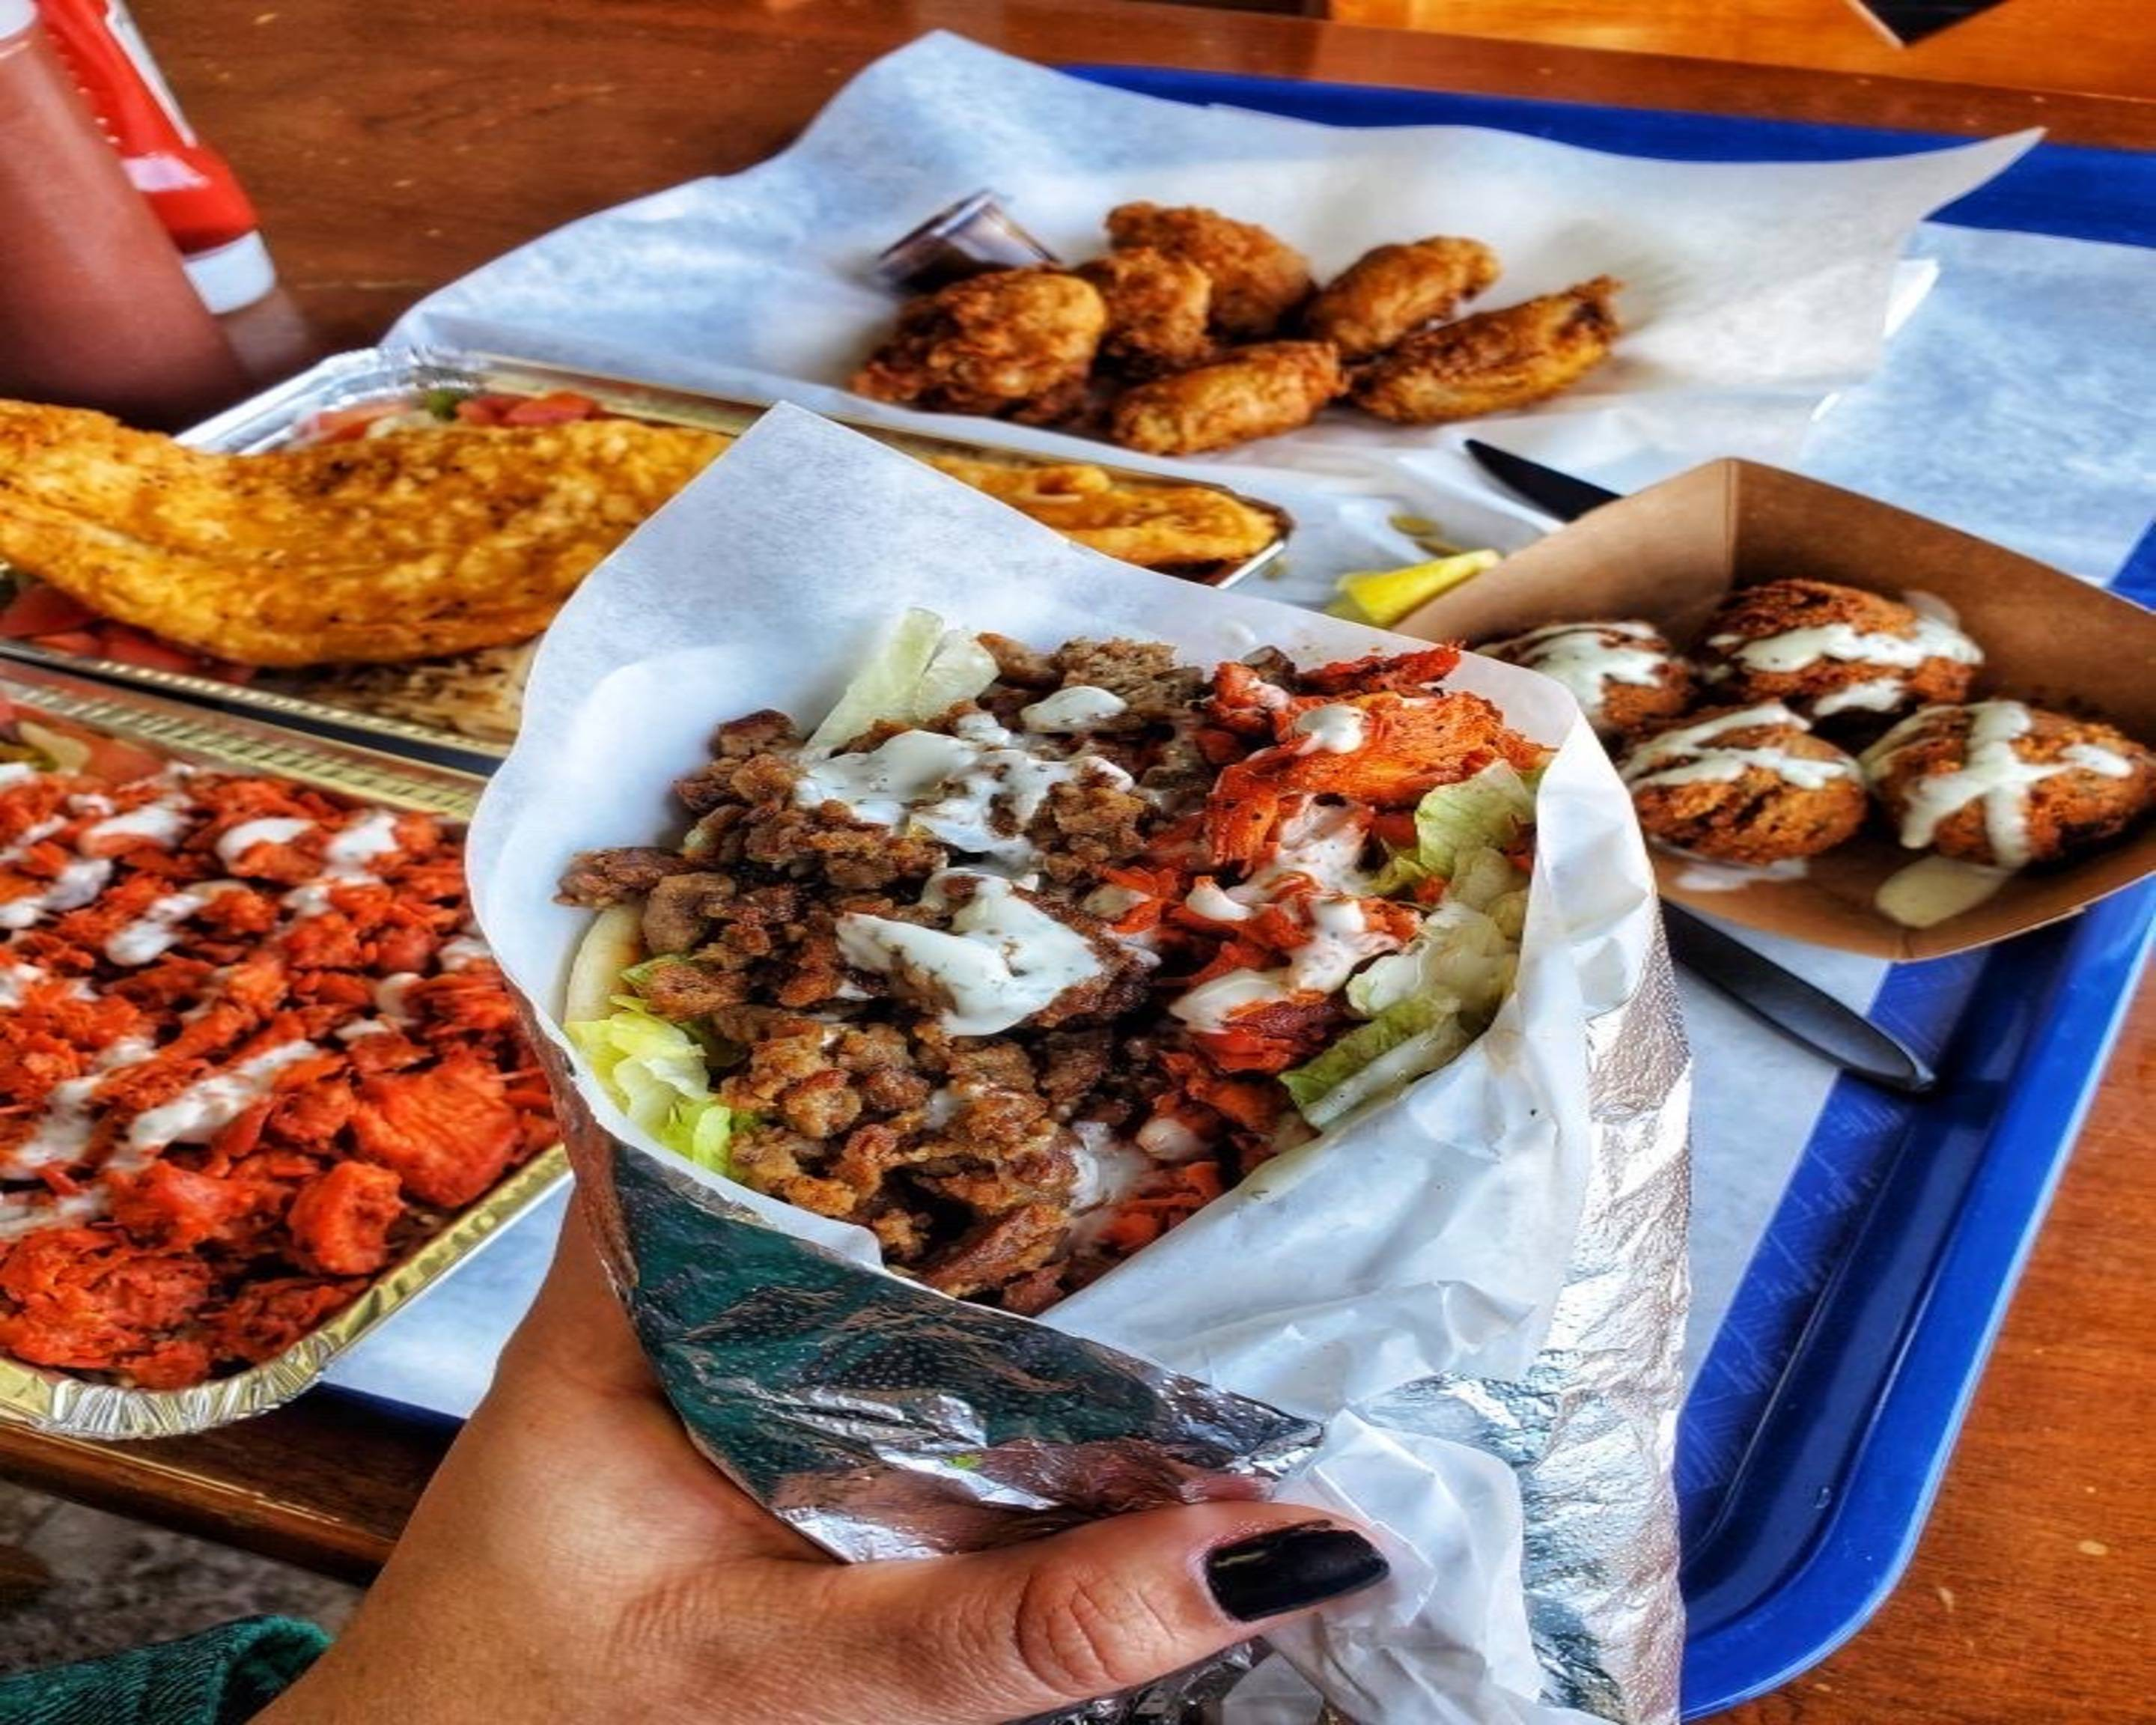 Order New York Chicken Gyro Hollywood Delivery Online Los Angeles Menu Prices Uber Eats Partner with deliveroo and reach more customers than ever. new york chicken gyro hollywood